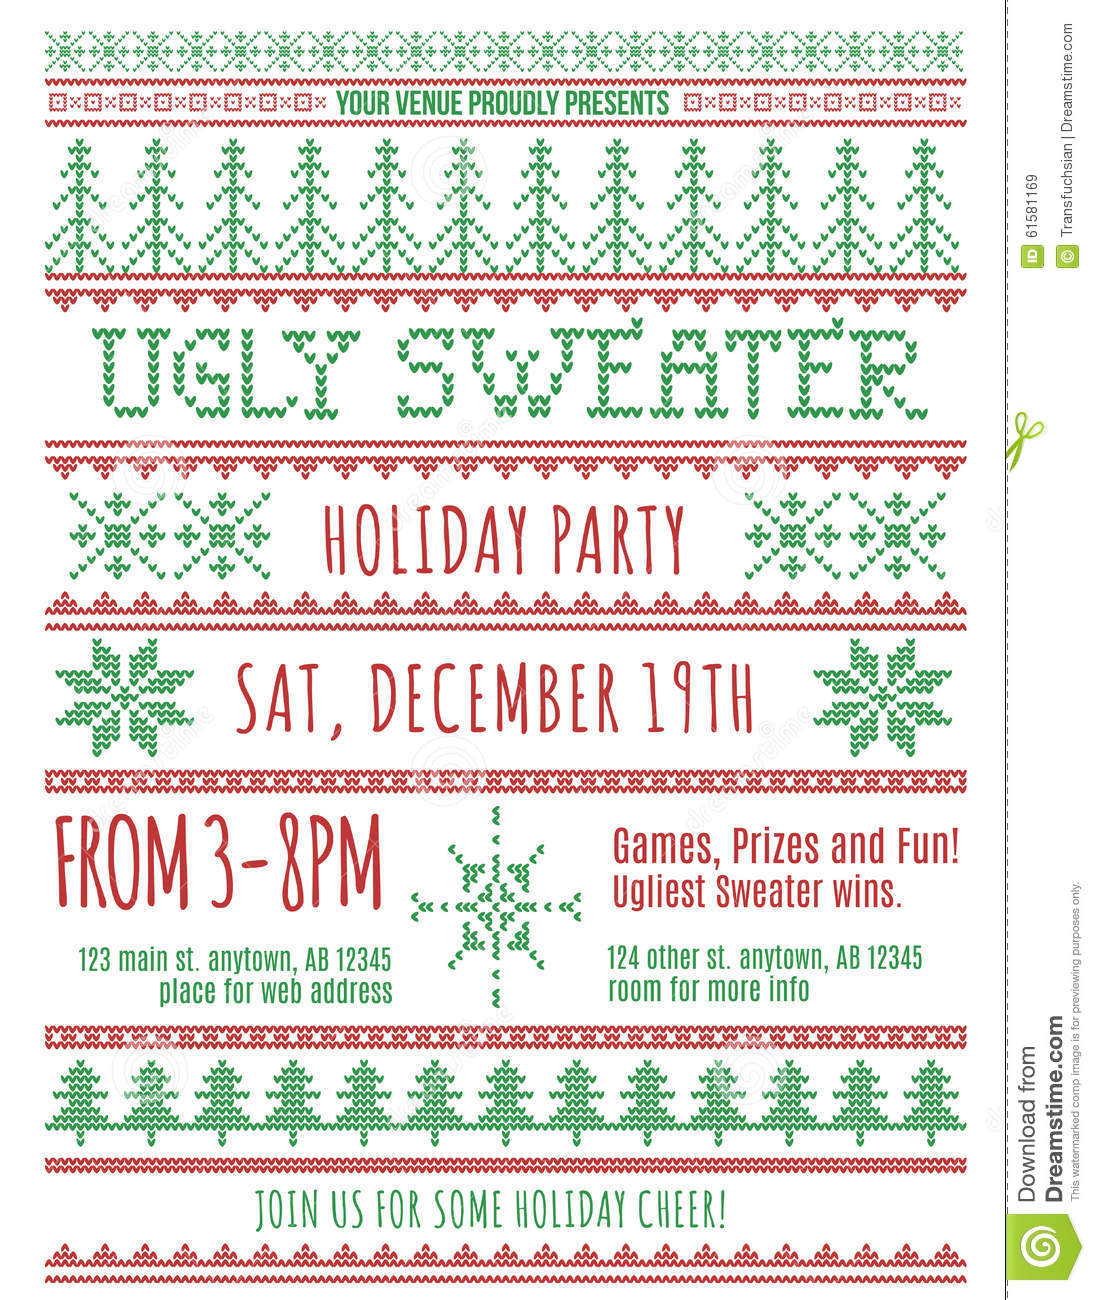 Ugly Sweater Party Invitation Stock Vector Illustration Of Layout